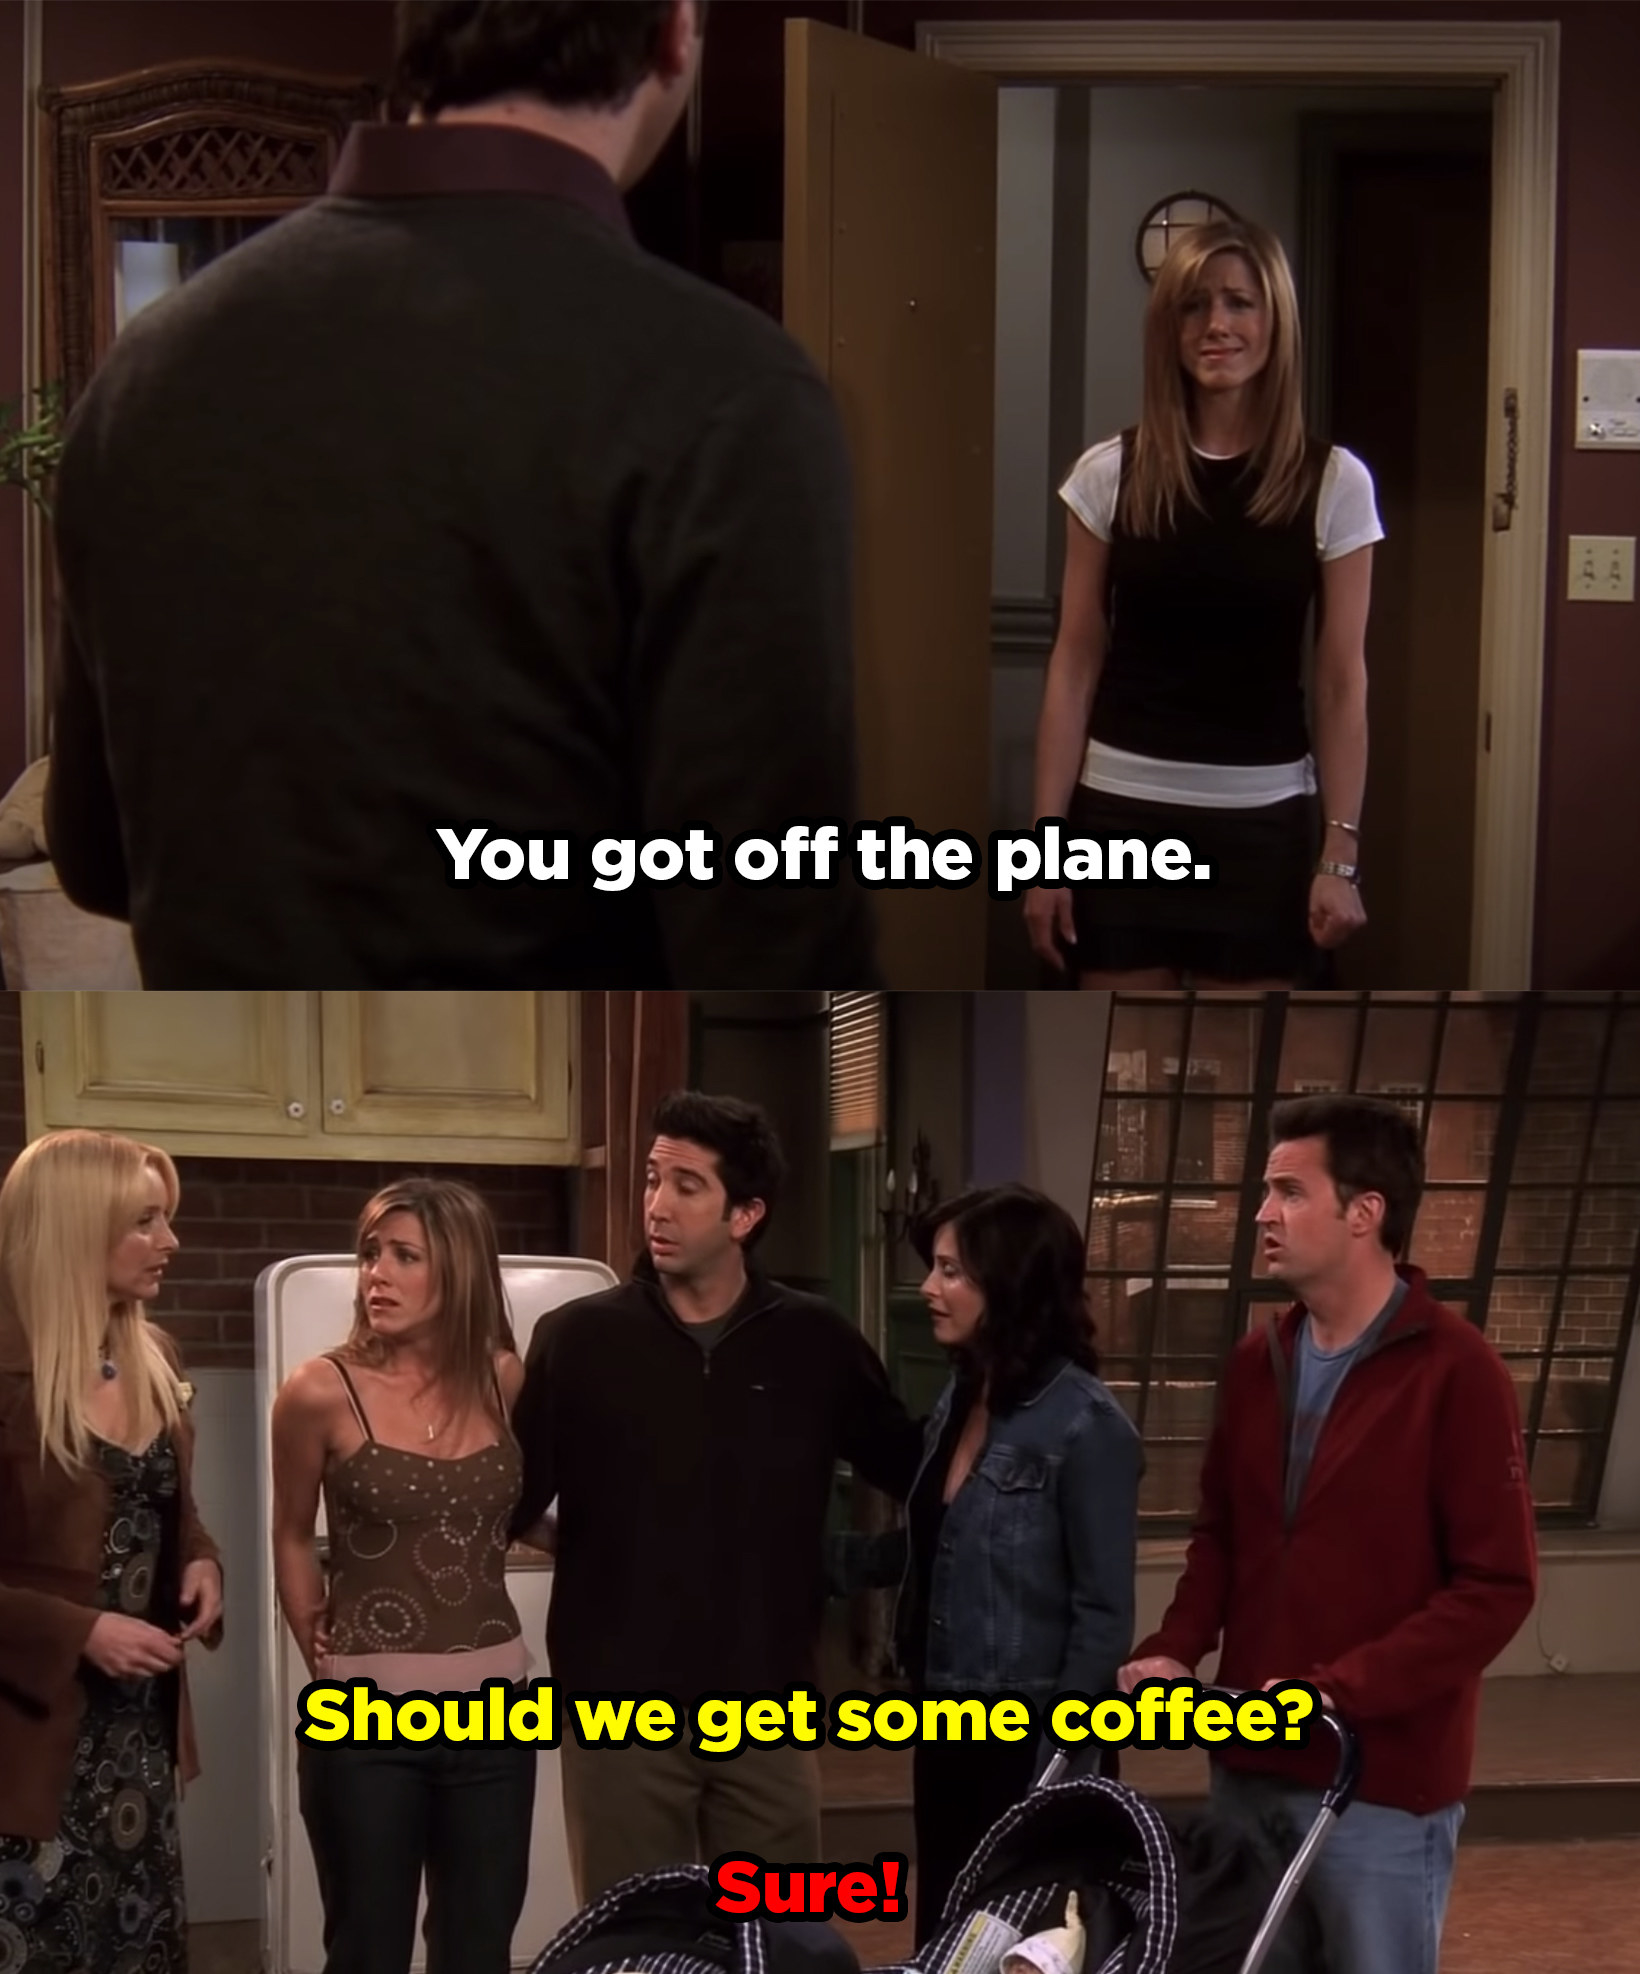 Ross surprised that Rachel got off the plane and then the whole group standing in Monica's empty apartment deciding to go get coffee before they all leave.